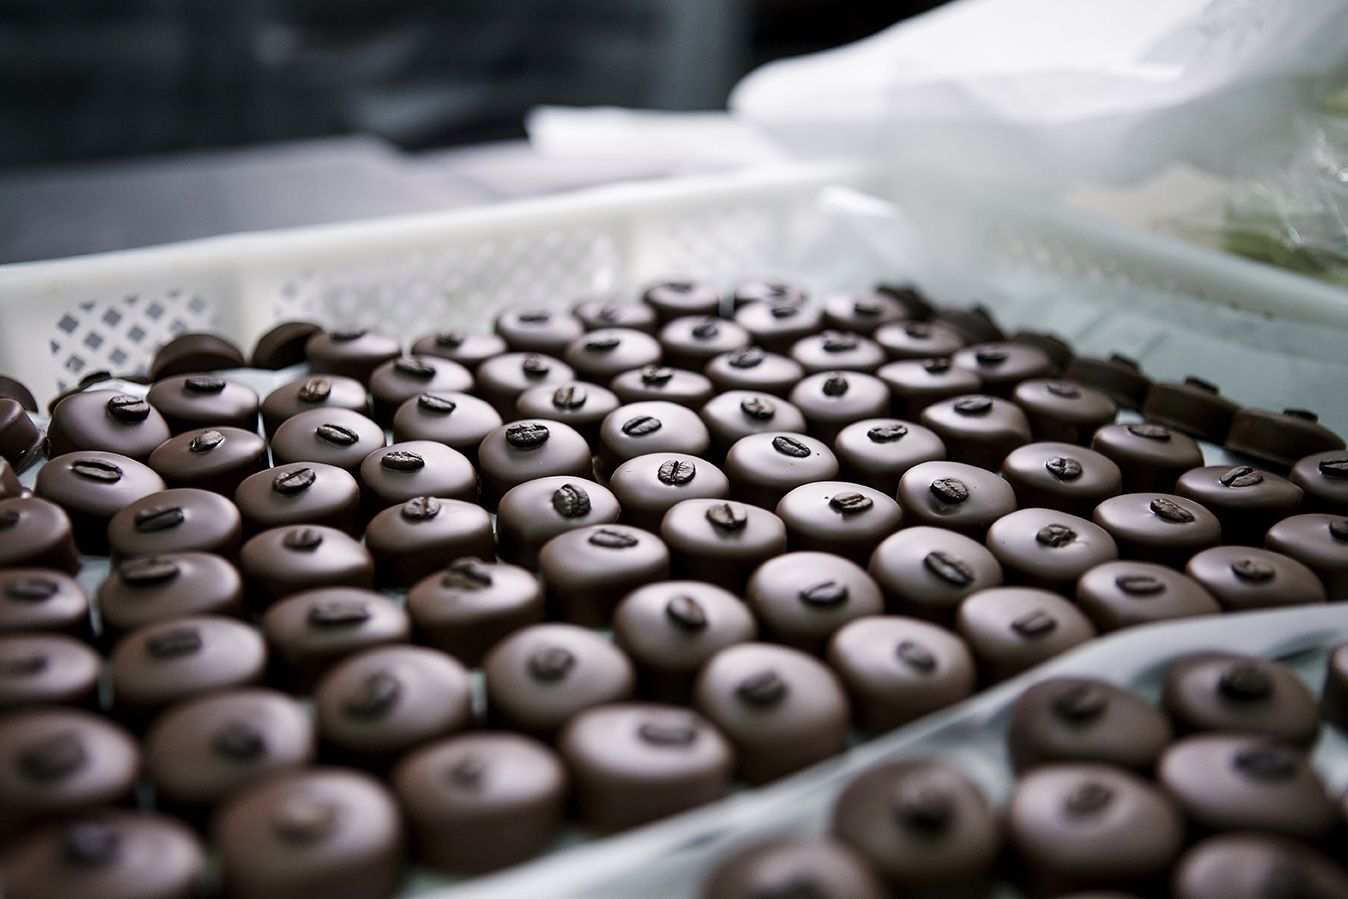 The perfect #Blend of selecting the right #Ingredients with the #Art of a consolidated production process and an innate #Italian #Creativity. #Amedei #Tuscany #Chocolate